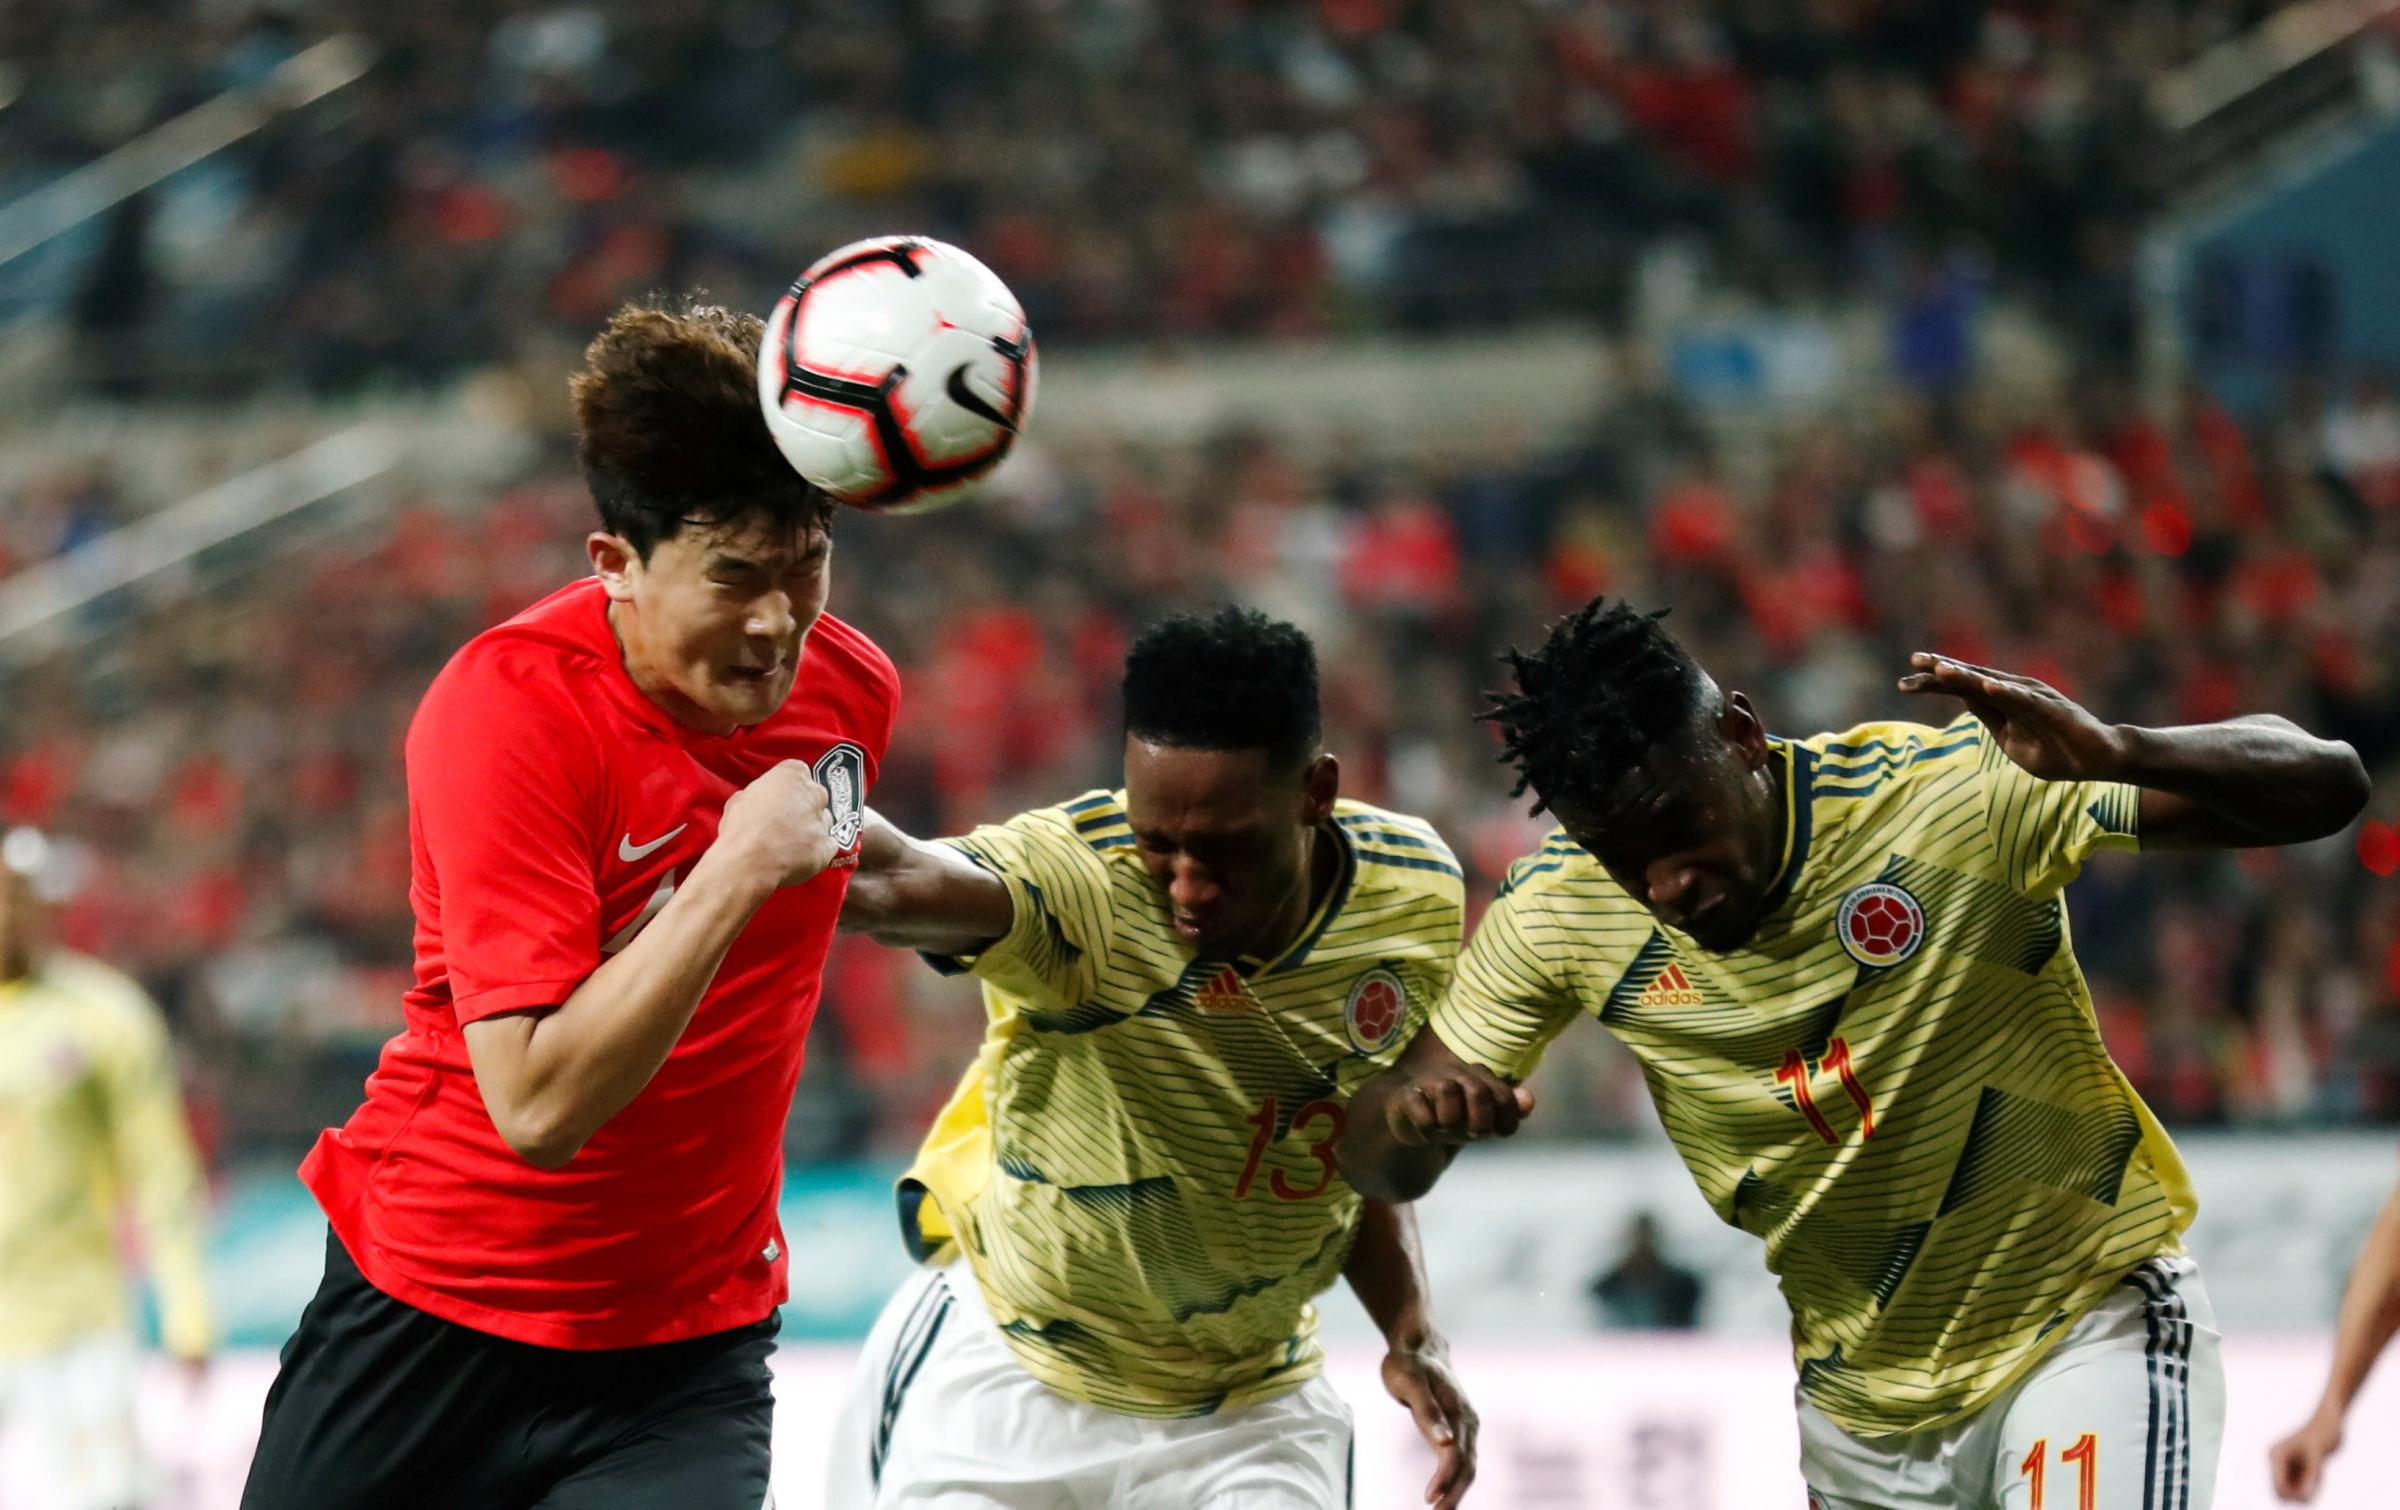 Beijing Guoan are not expecting Kim Min Jae to join Watford this summer